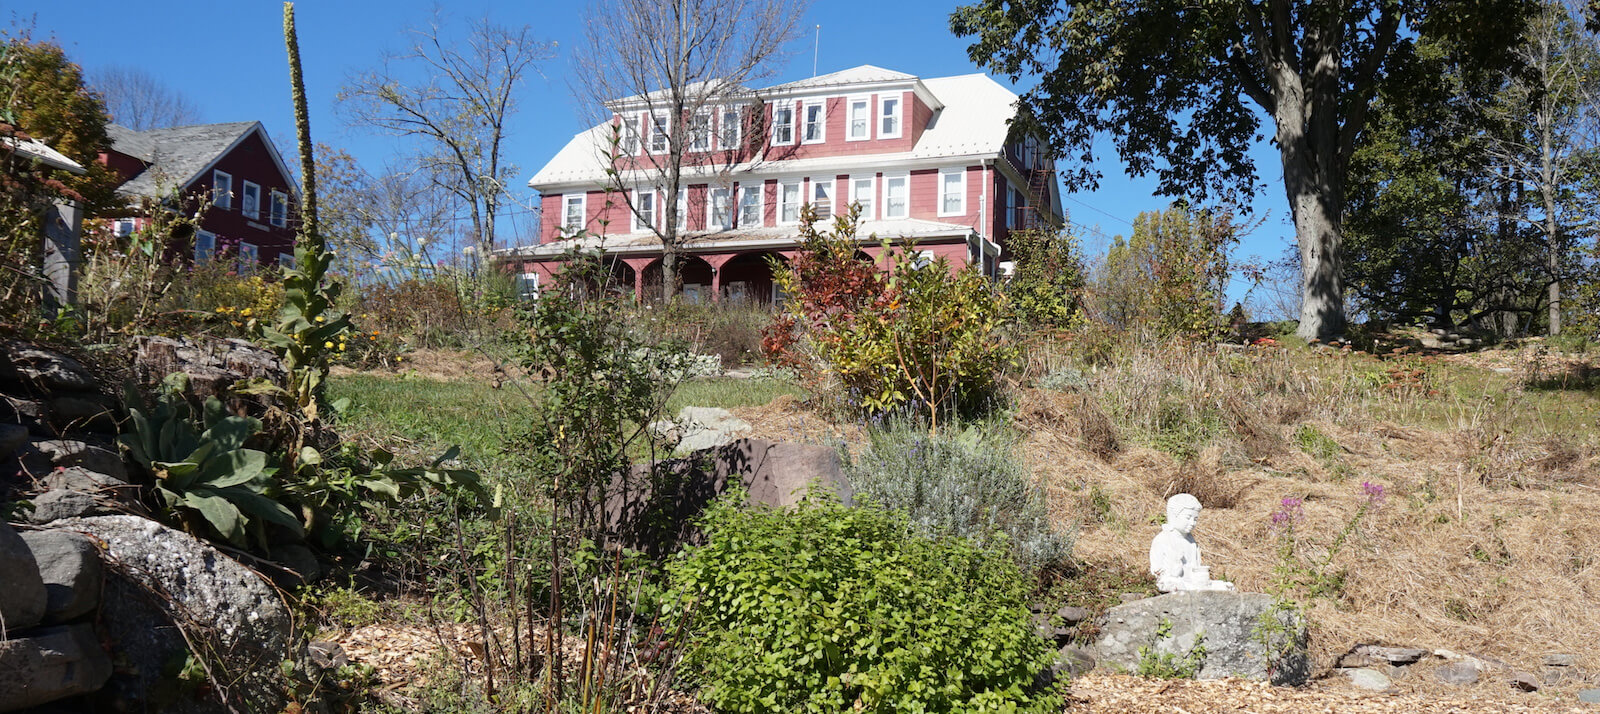 mika-on-ashram-Sivananda-Yoga-Ranch-newyork-ananda